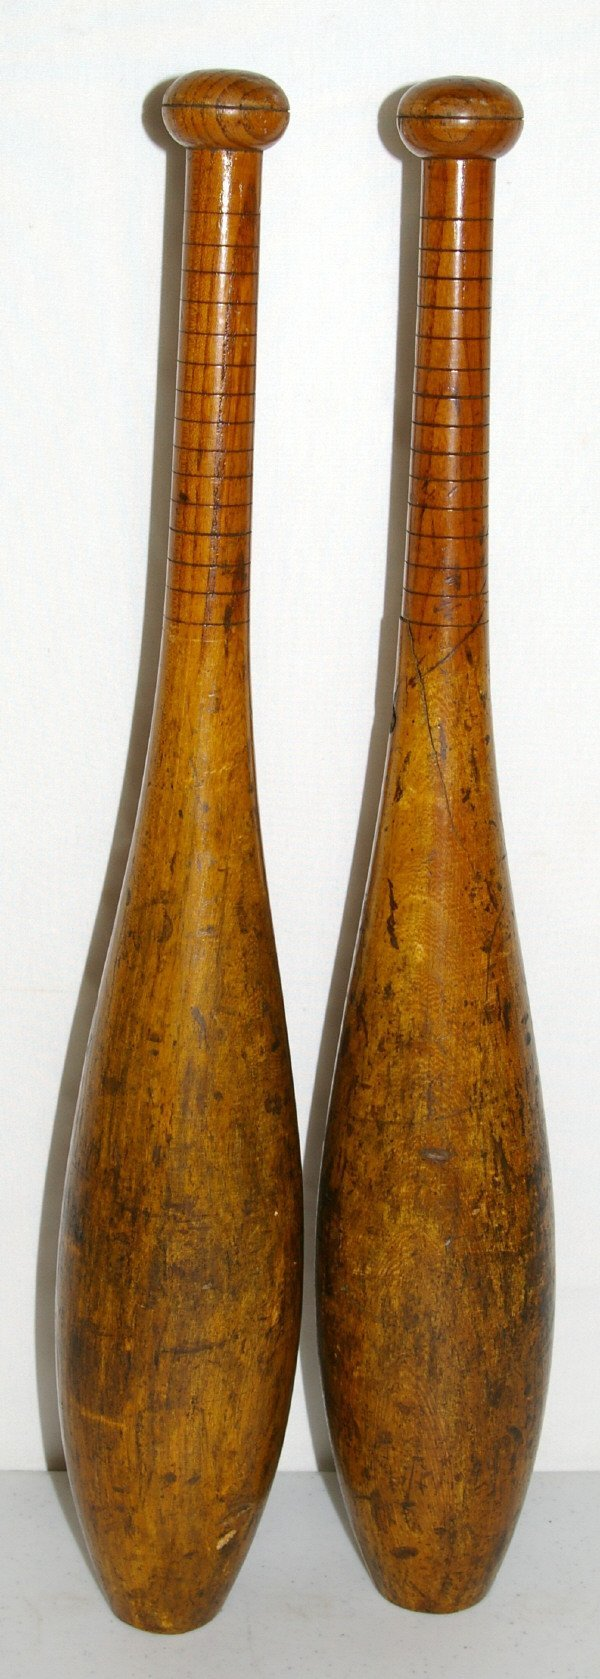 511: Pair Of Four Pound Indian Clubs